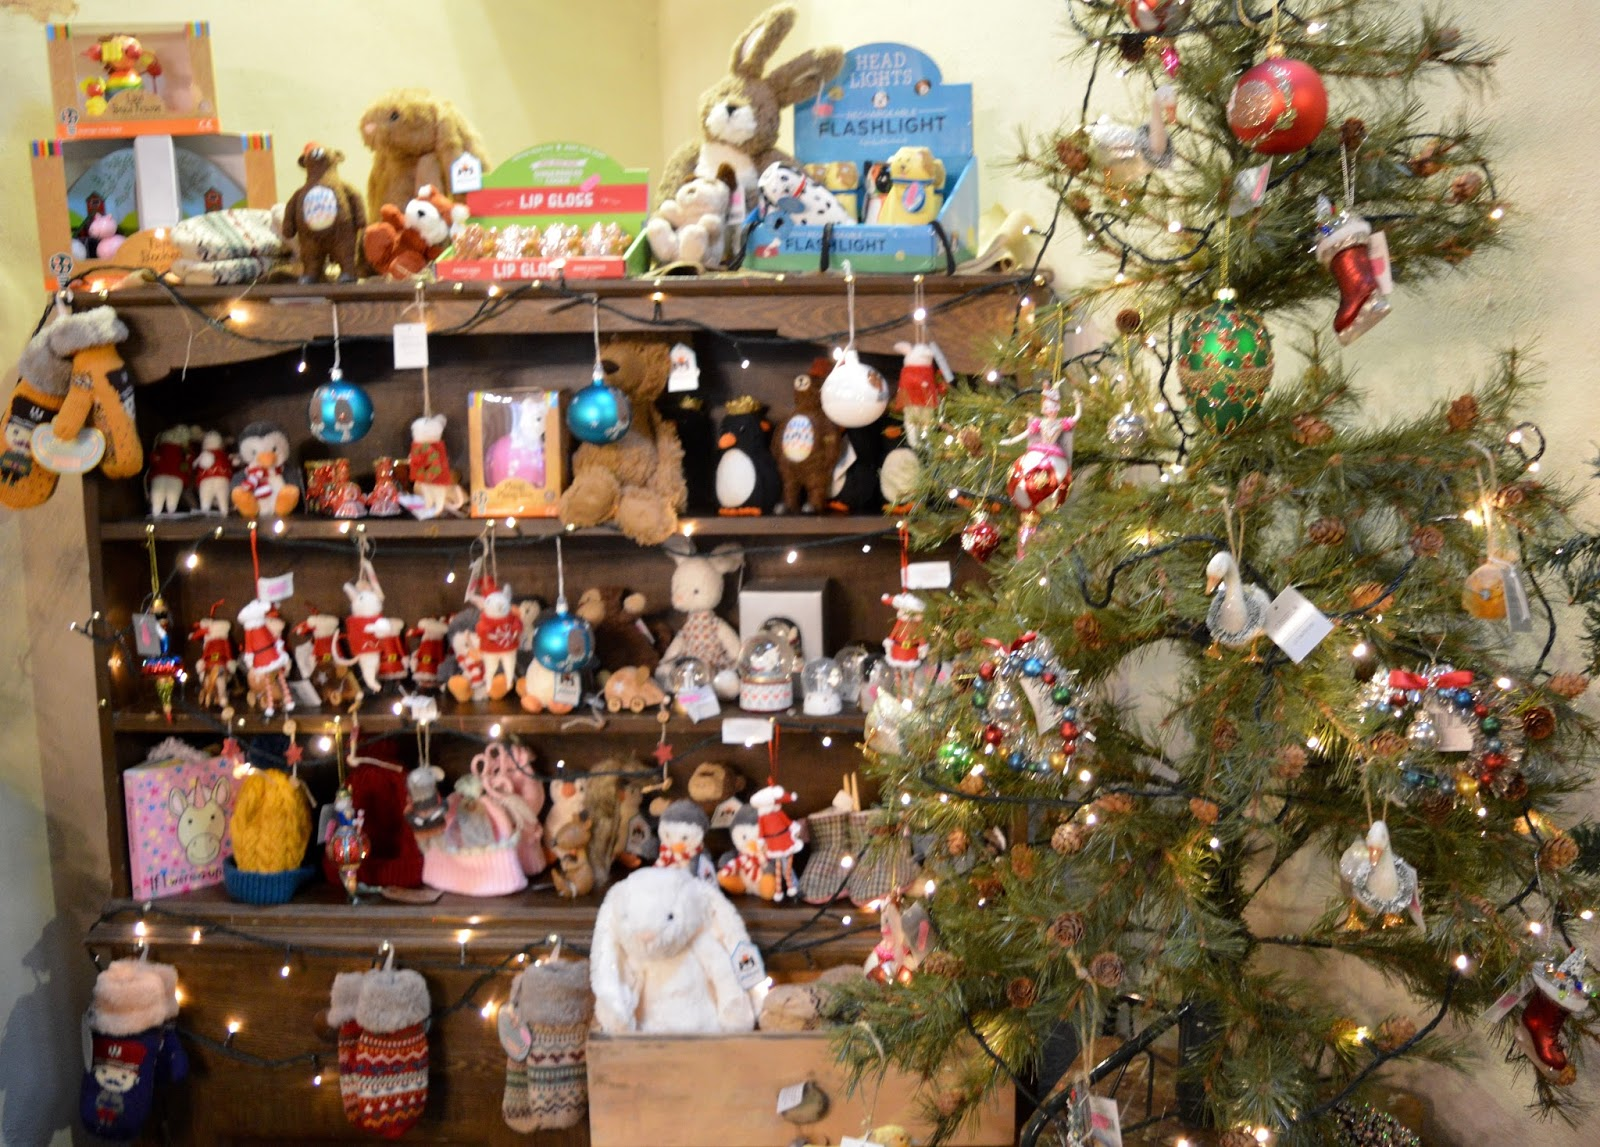 Family Sunday Lunch Menu at Roots Farm Shop & Cafe near Northallerton in North Yorkshire | A Review - Roots pop up Christmas shop - Decorations and gifts for sale